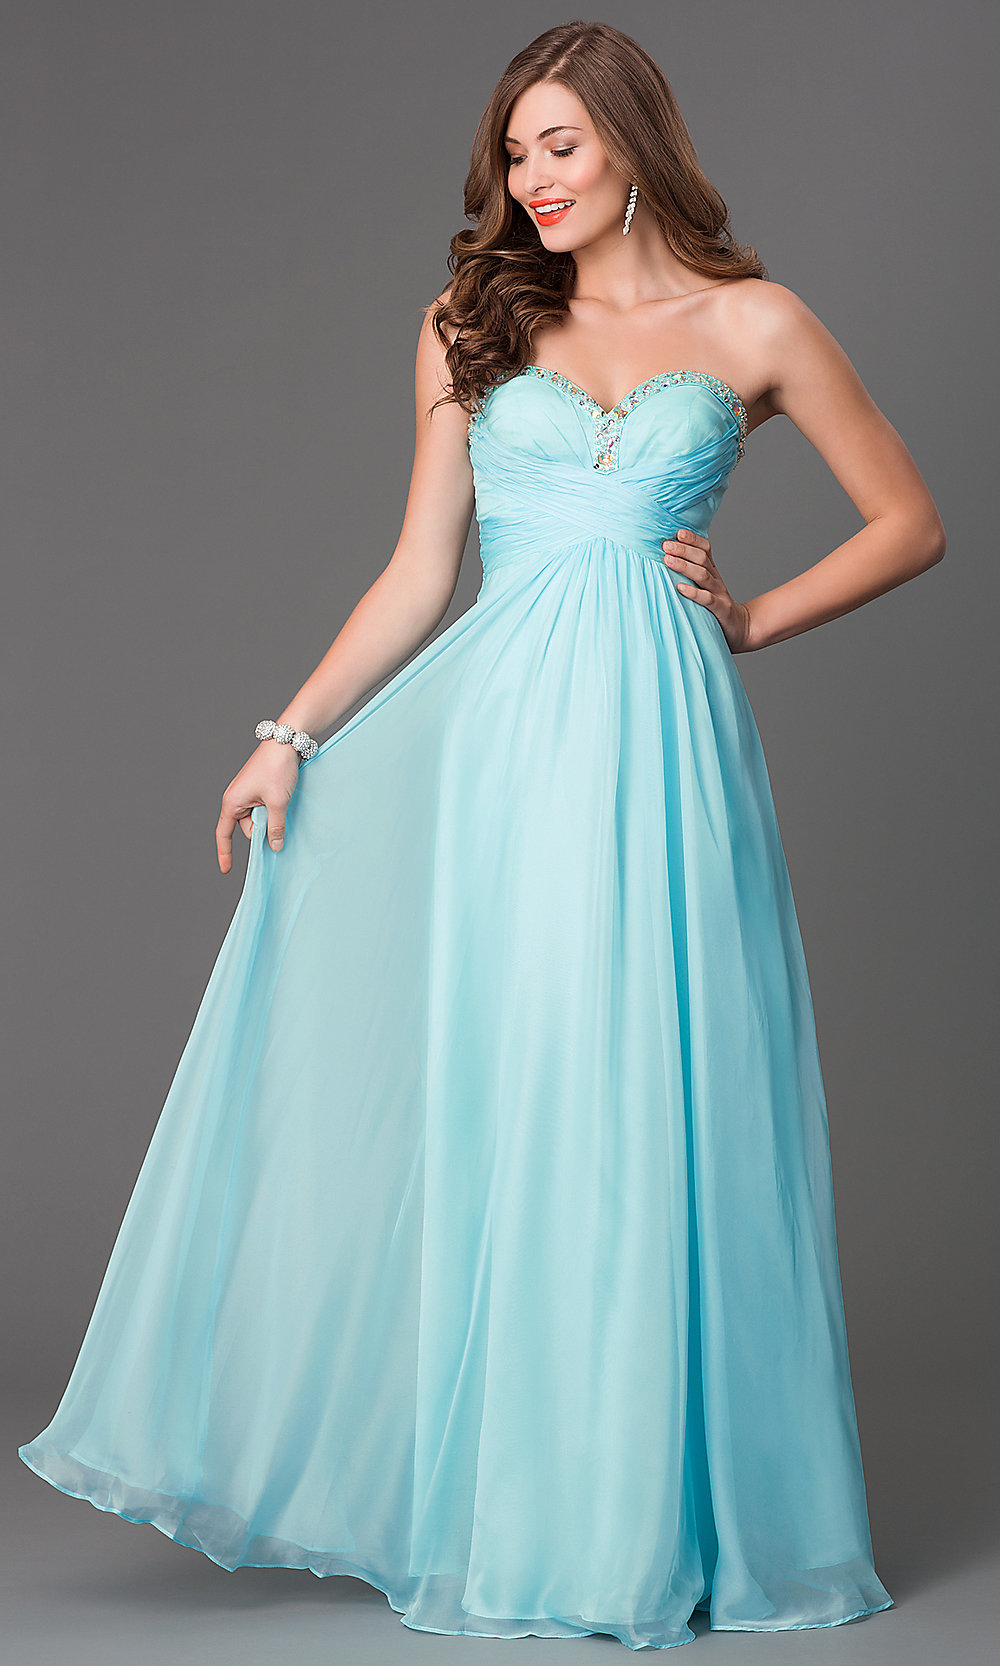 Mint Green Prom Gowns, Strapless Prom Dresses in Green- PromGirl